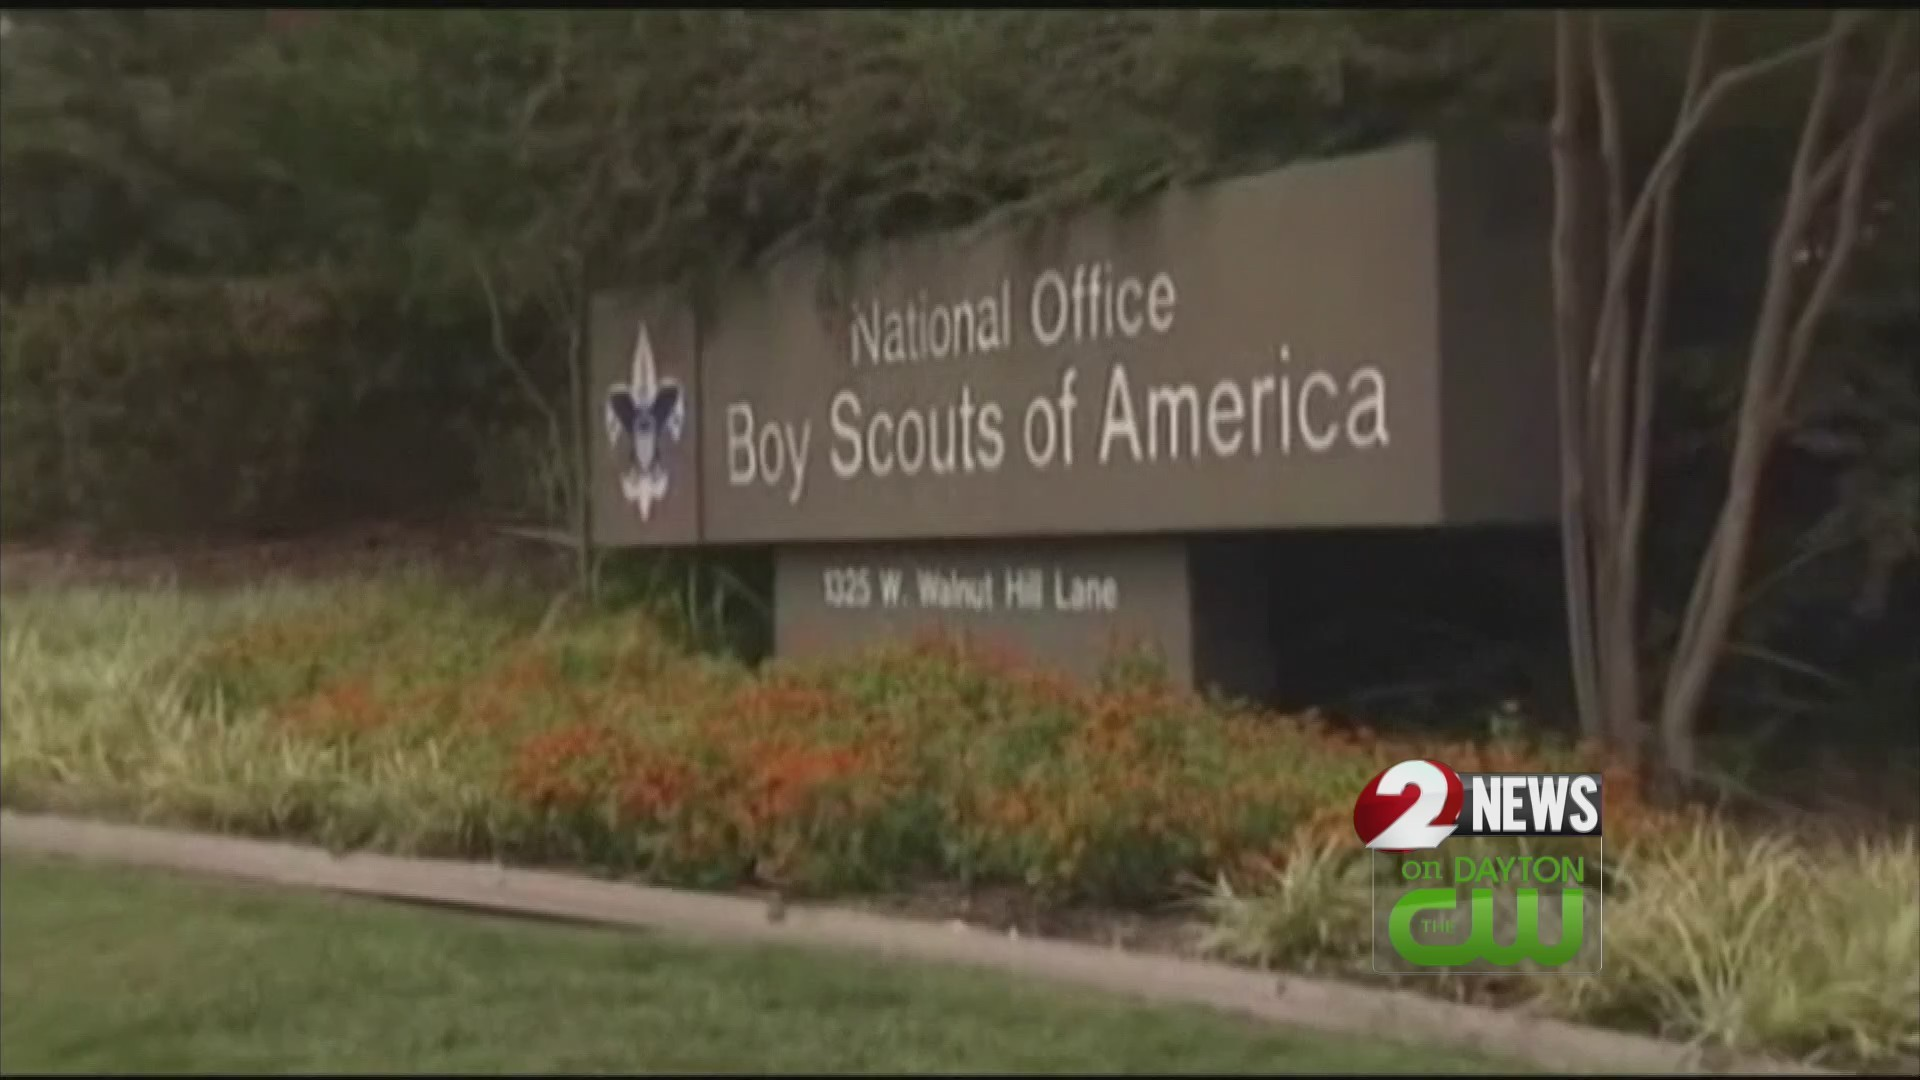 Report shows 12,000 boy scouts molested by scout leaders